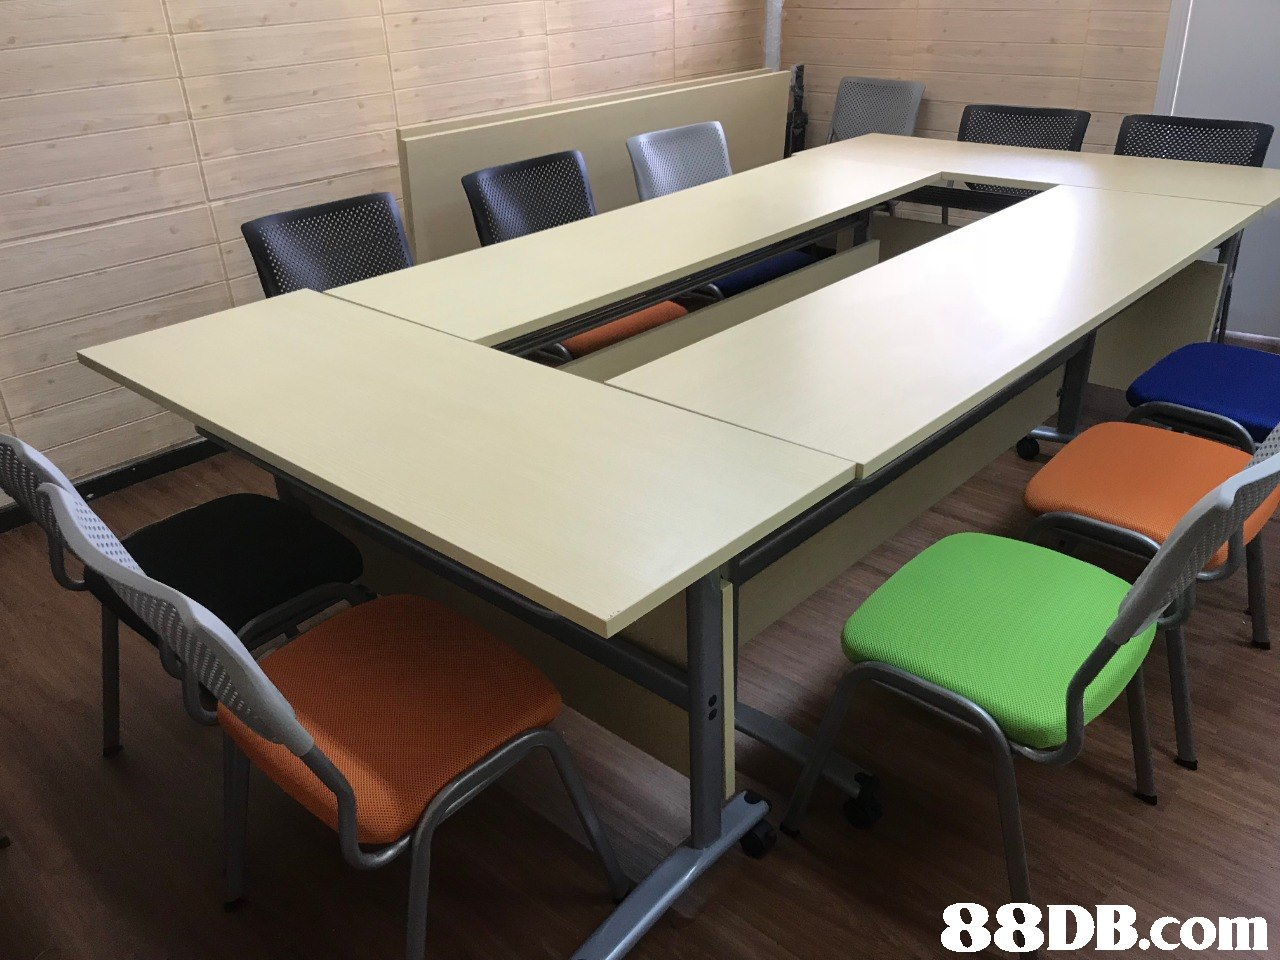 furniture,table,office,desk,